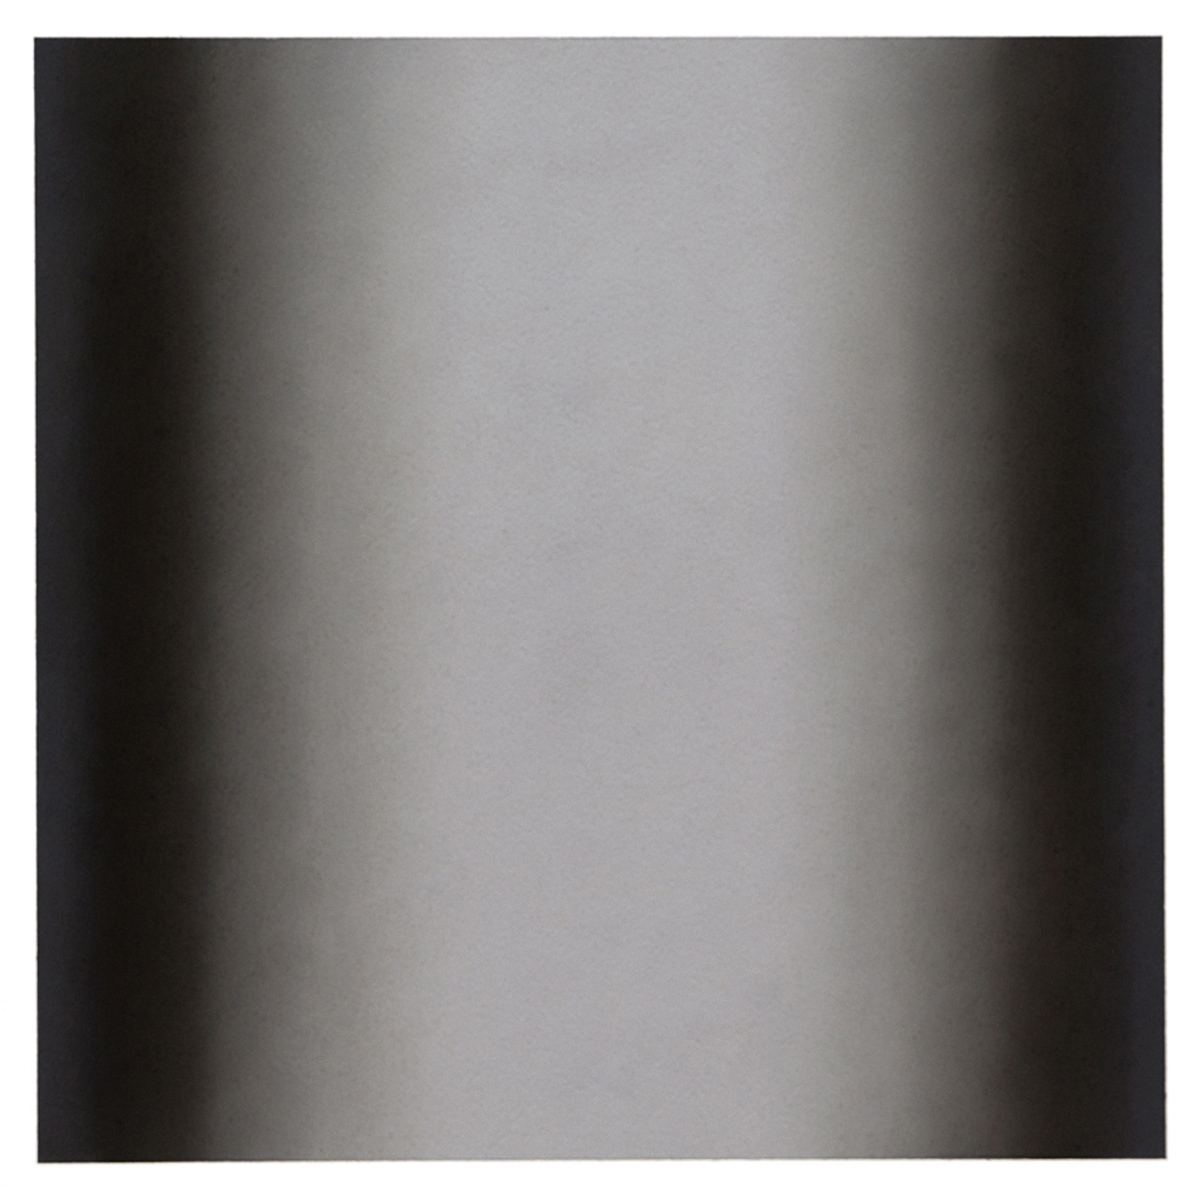 Gray Series #3, 2013, pastel on paper, image 14 x 14 in. (36 x 36 cm.), sheet 30 x 22 in. (76 x 56 cm.)